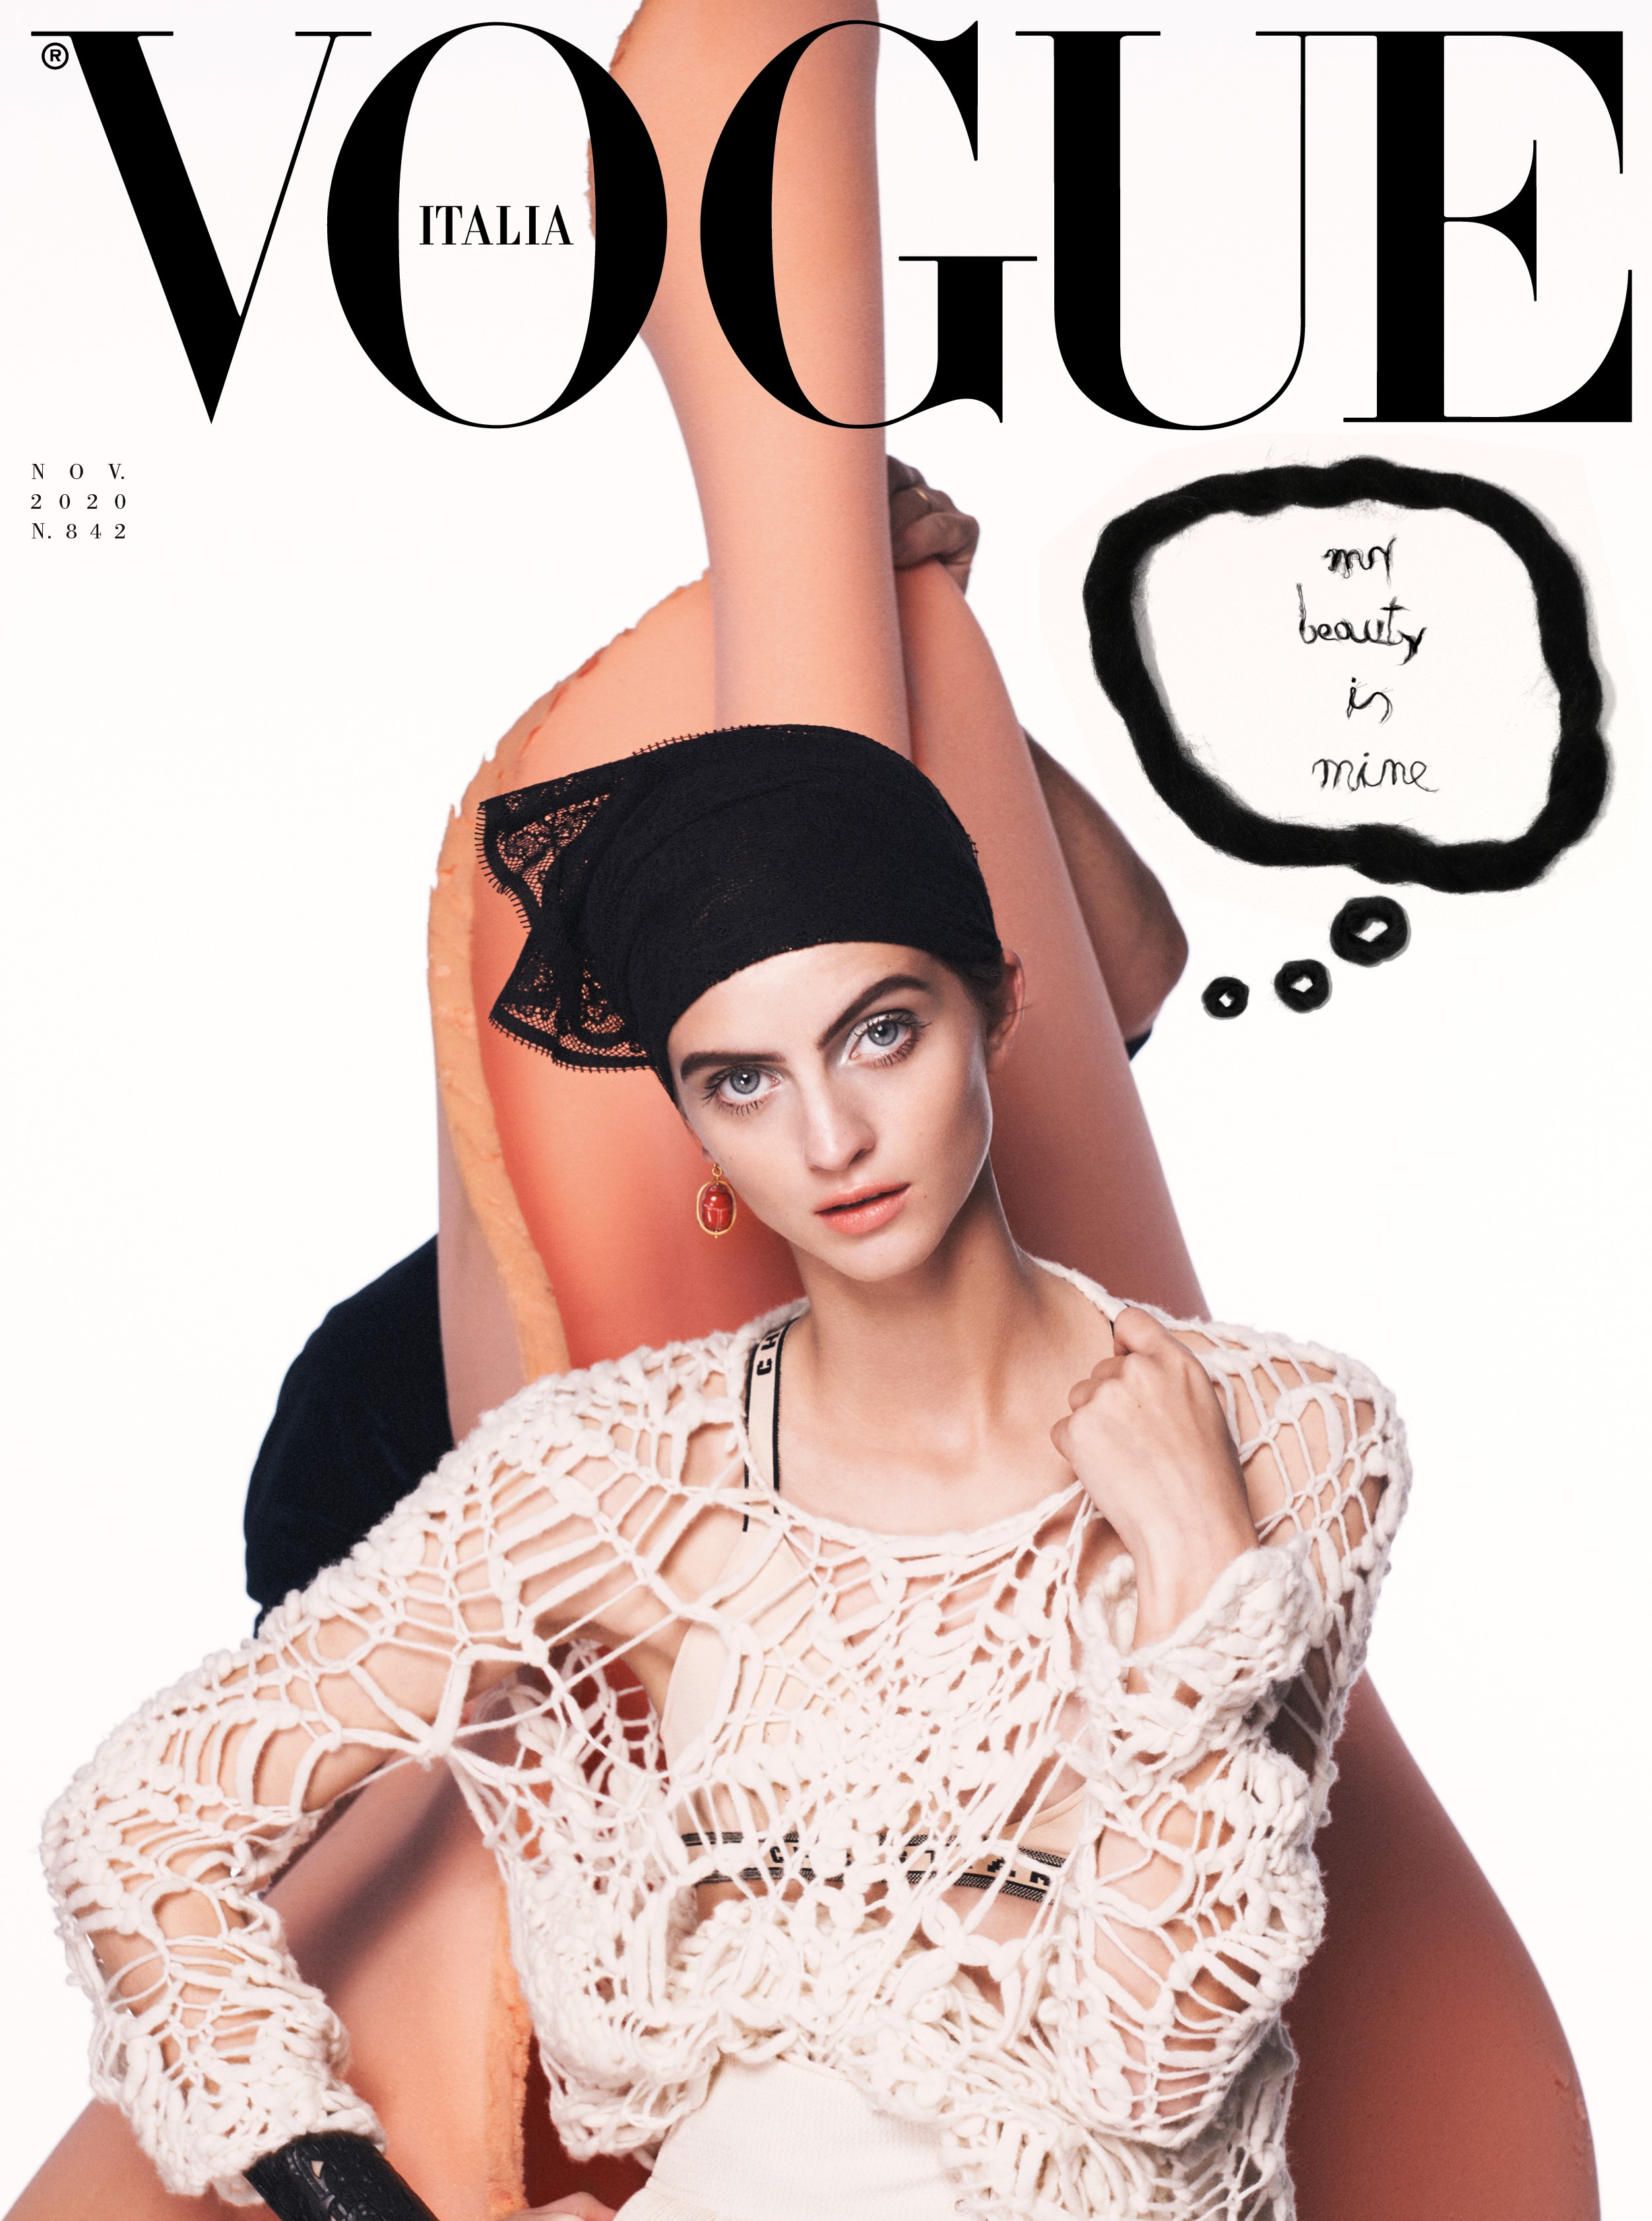 The cover of Vogue Italia's November issue.